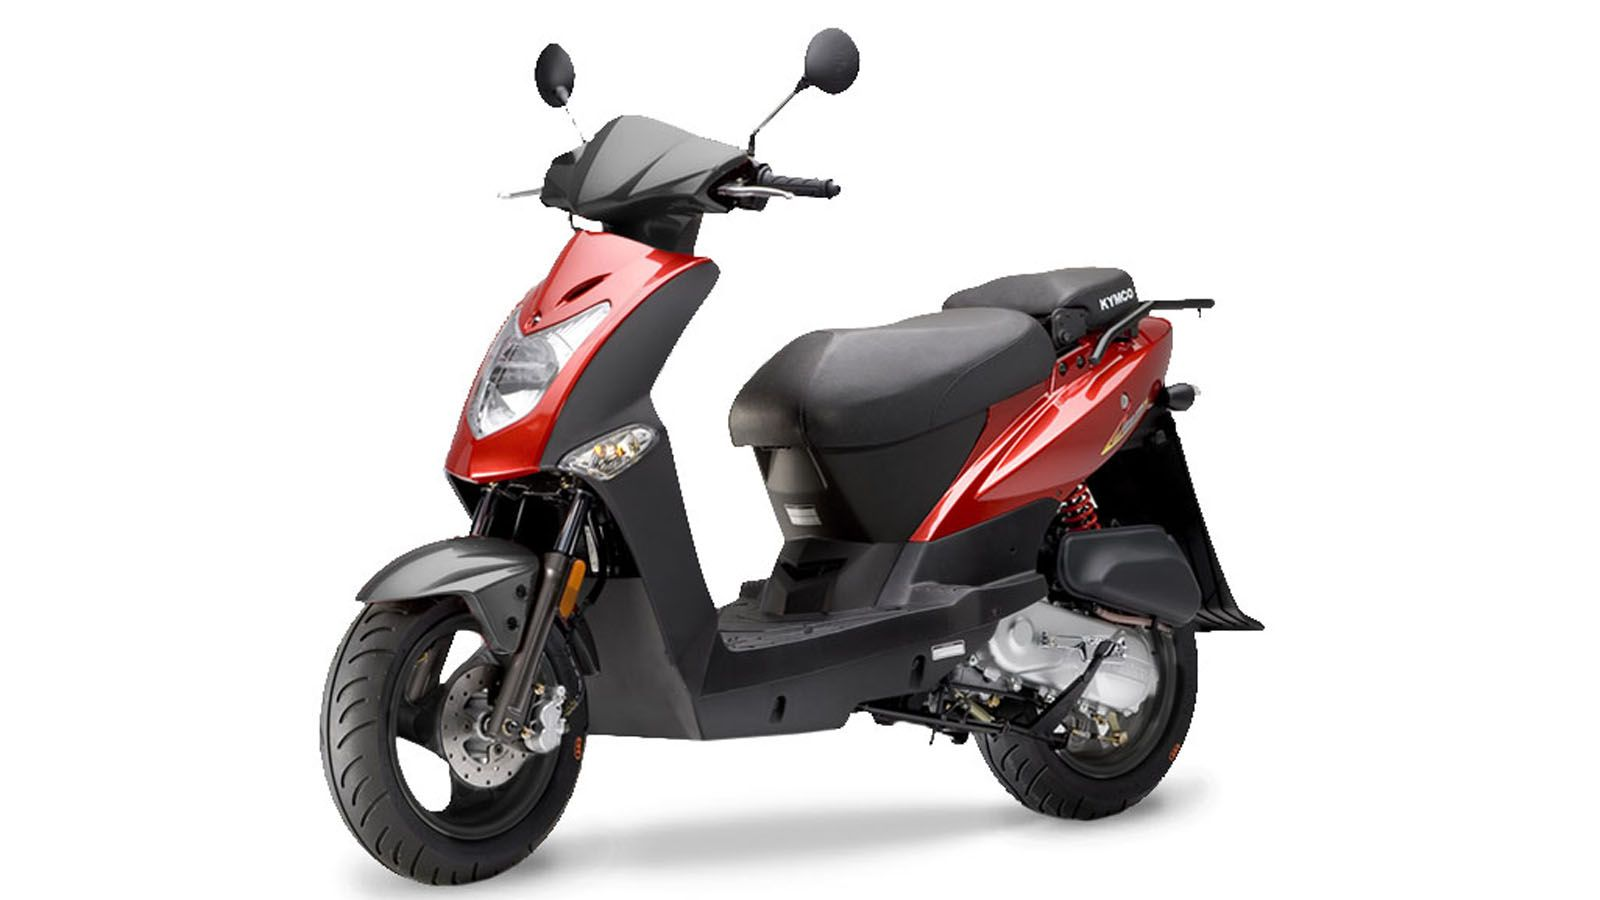 kymco agility 50f keeway f act evo 50 2t kymco agility. Black Bedroom Furniture Sets. Home Design Ideas